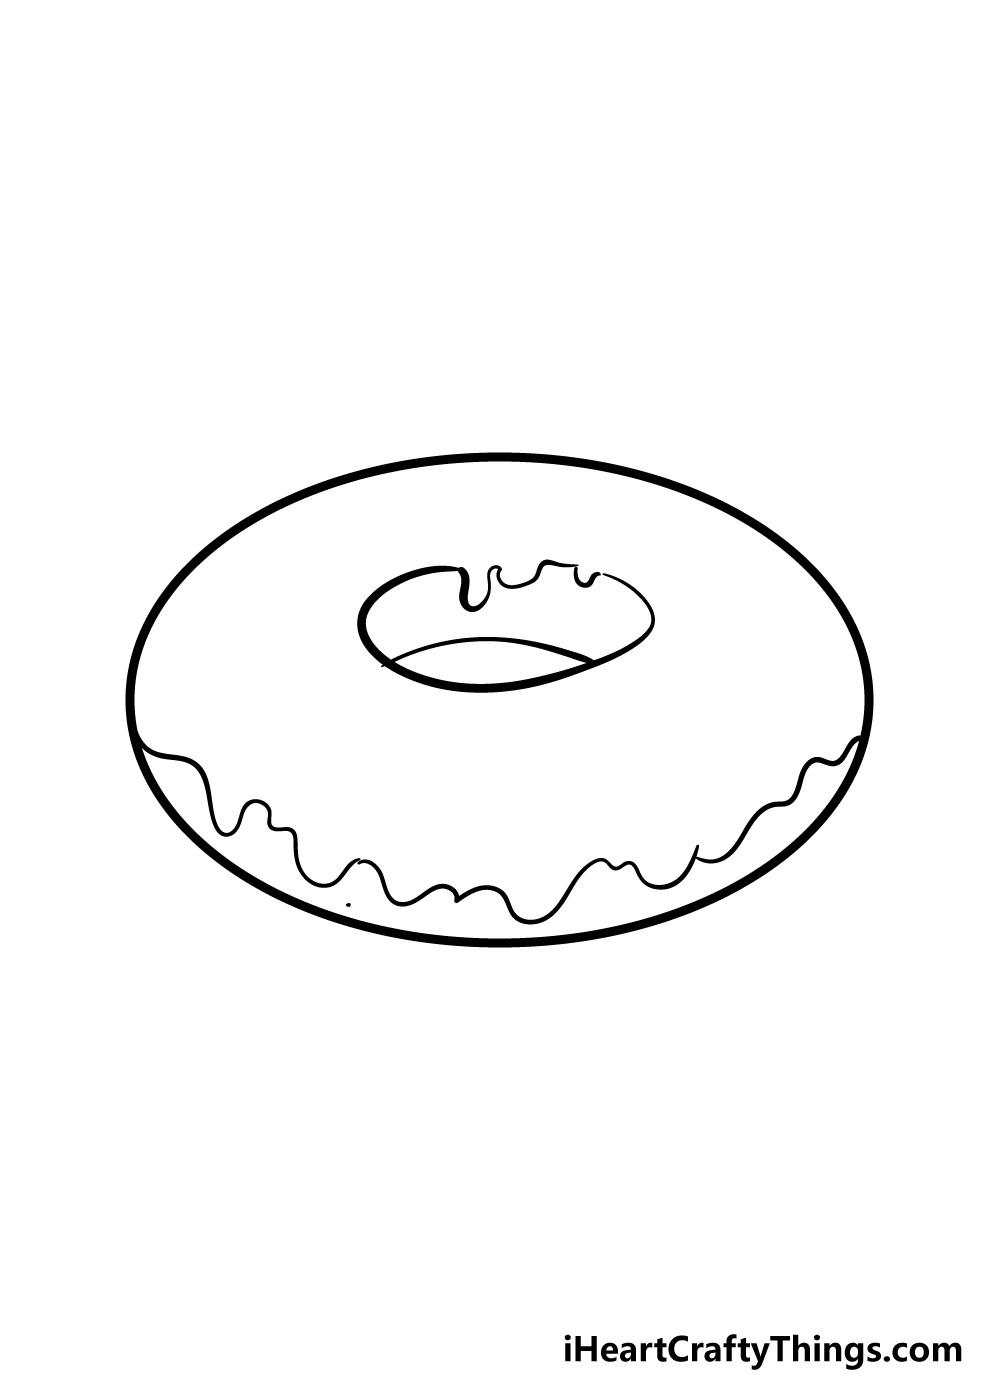 donut drawing step 4